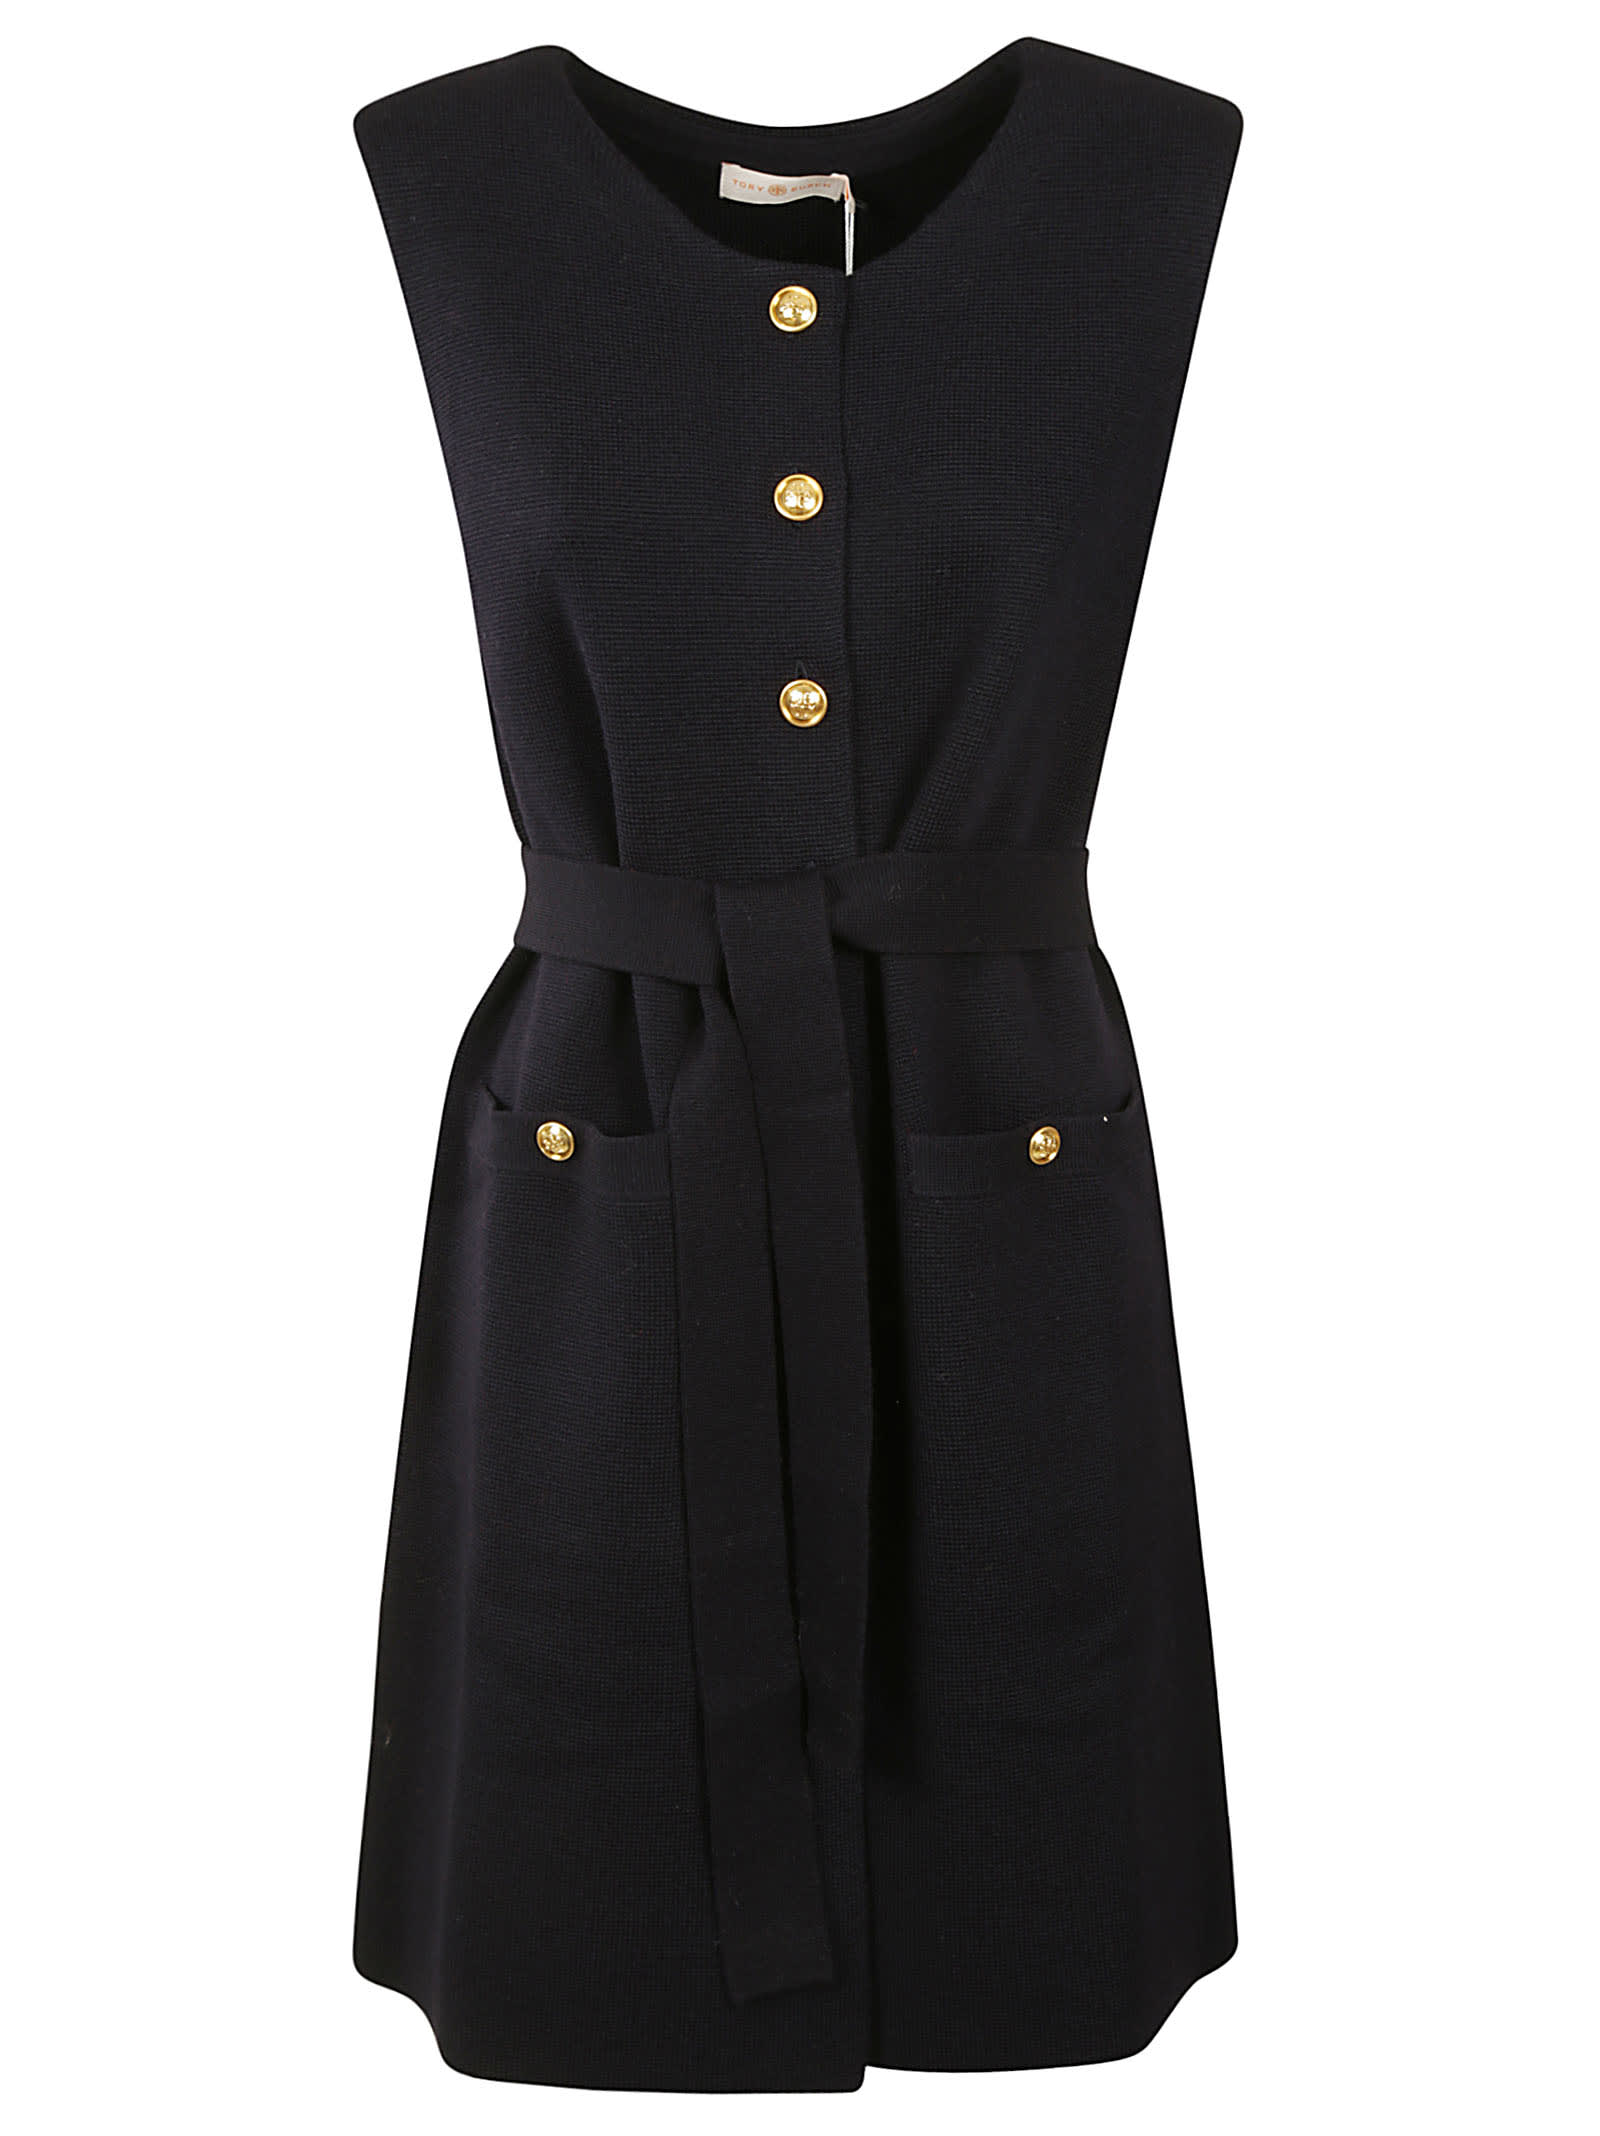 Tory Burch Tie Waist Dress